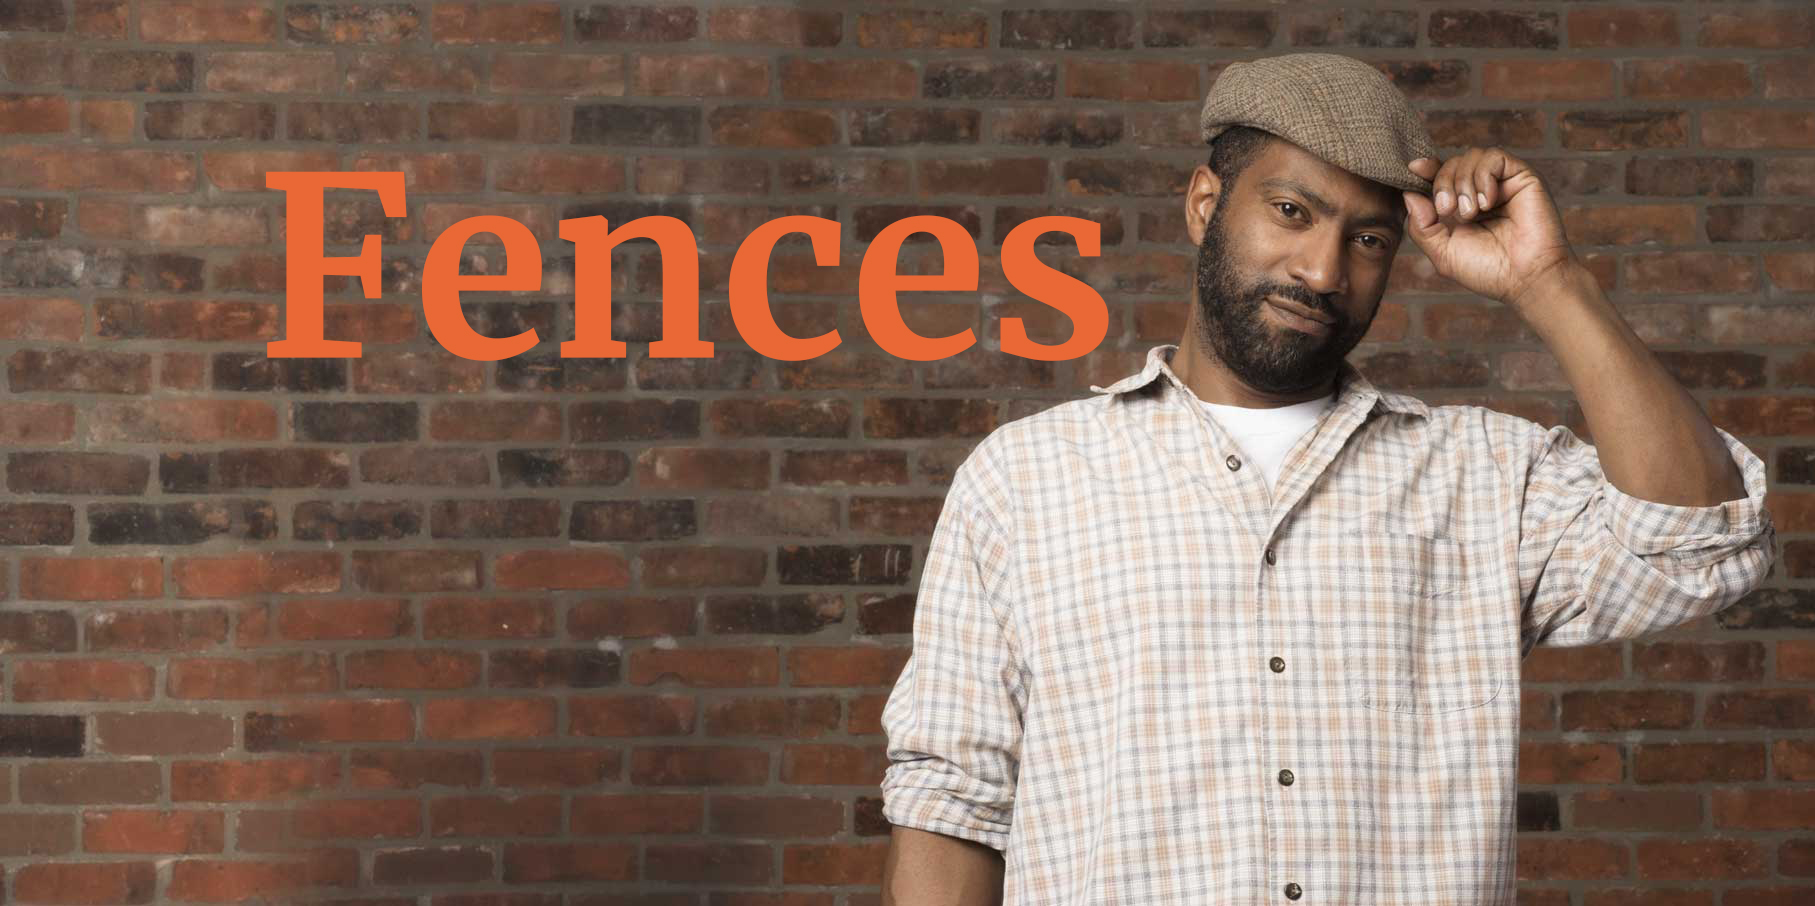 A man in a hat looks at the lens. Fences is the title of the play.